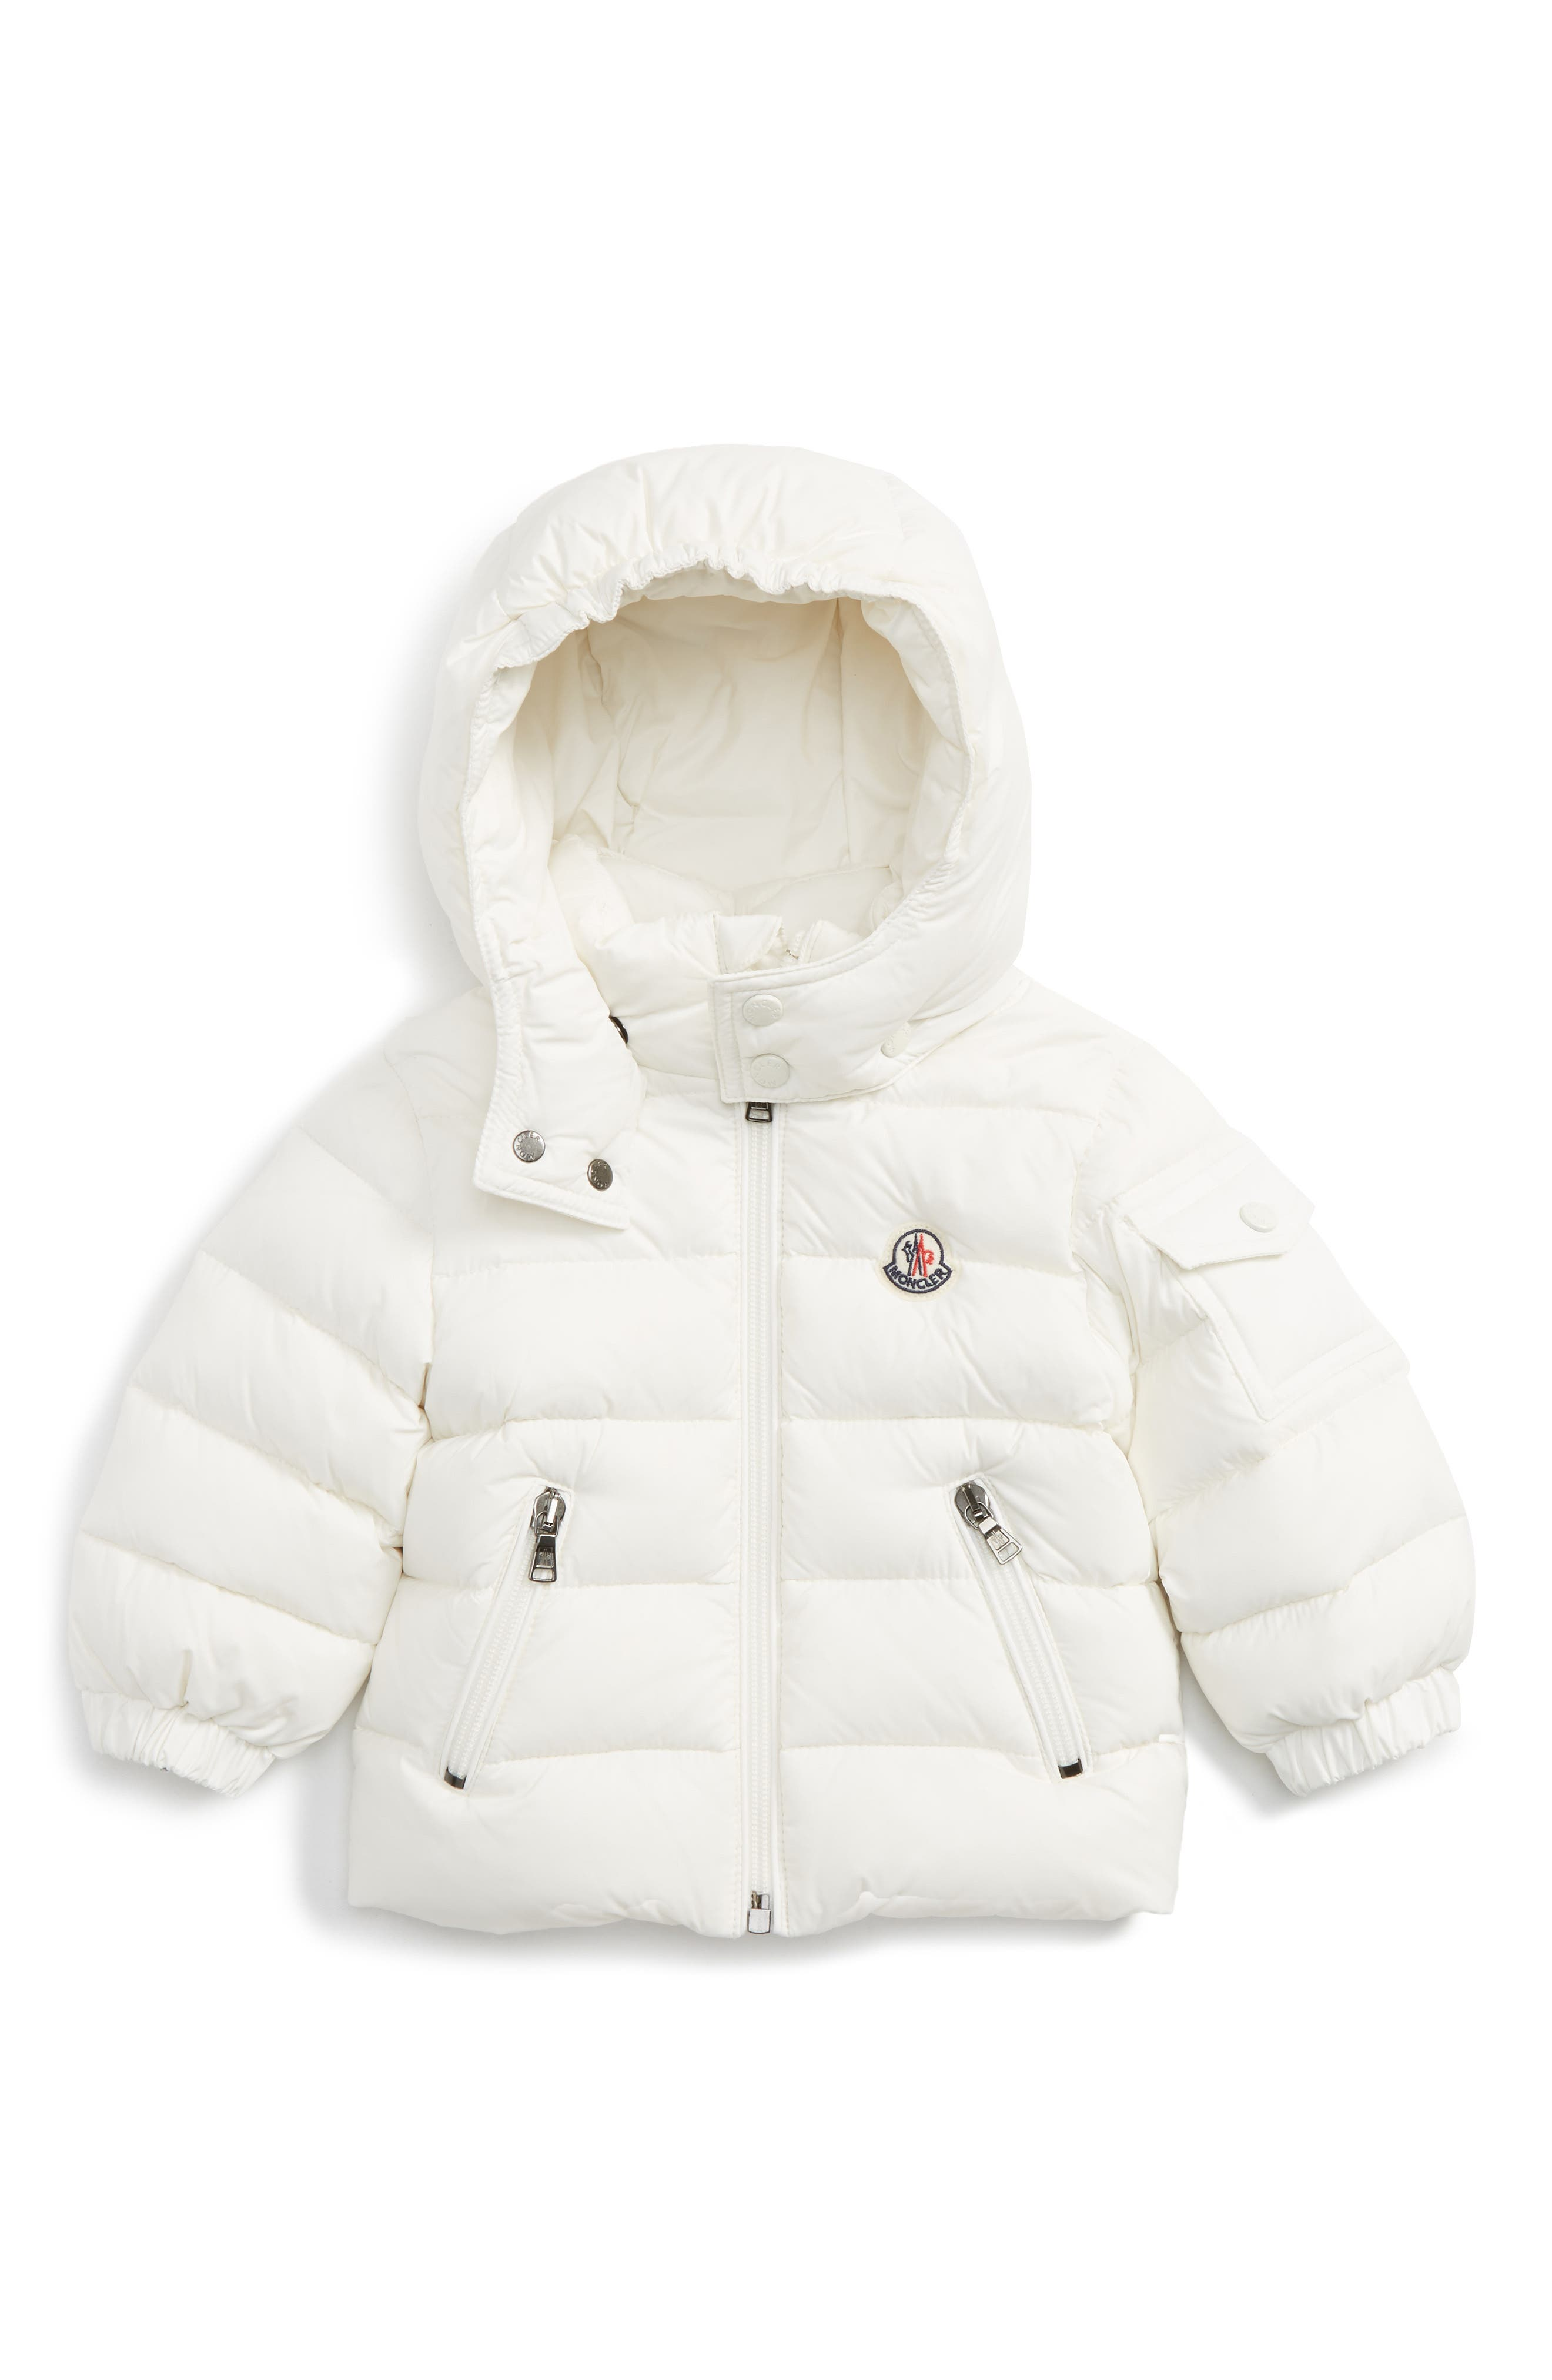 Jules Water Resistant Down Jacket,                         Main,                         color, White